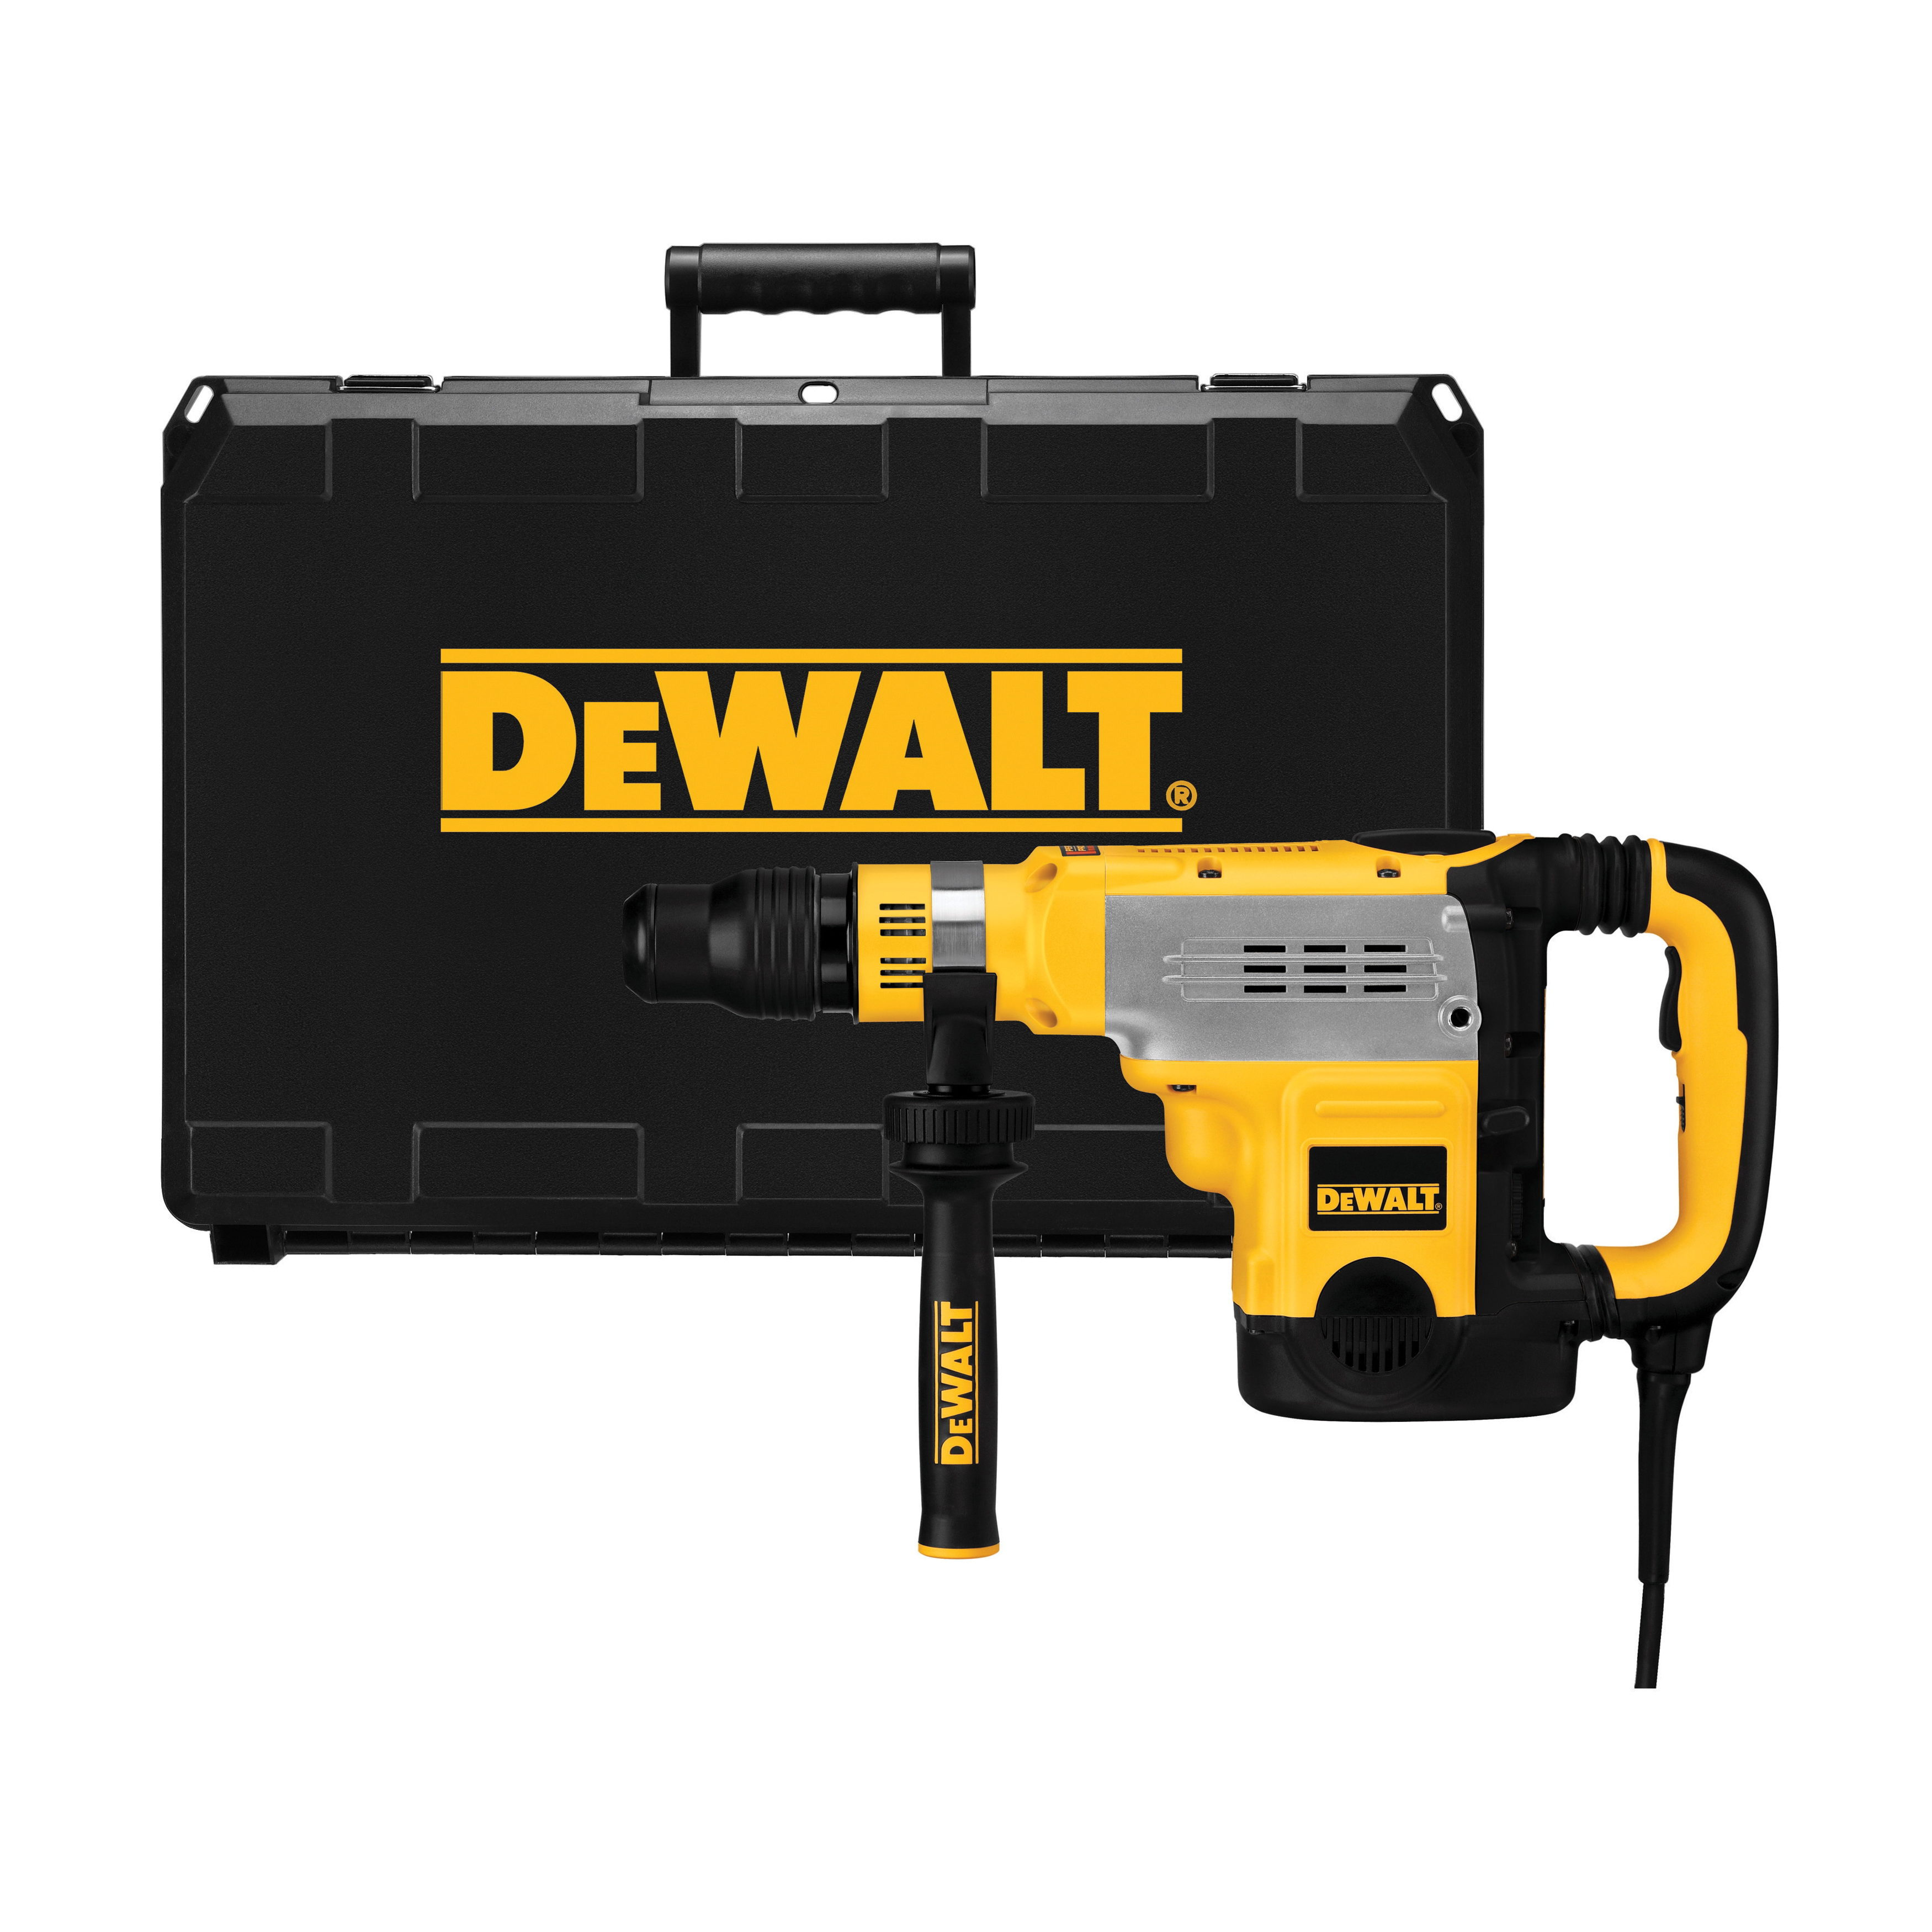 DeWALT® D25602K Electronic Rotary Hammer Kit, 1-3/4 in SDS Max® Chuck, 1430 to 2840 bpm, 210 to 415 rpm No-Load, 6 in Max Core Bit Compatibility, 1-7/8 in Max Solid Bit Capacity, 18.6 in OAL